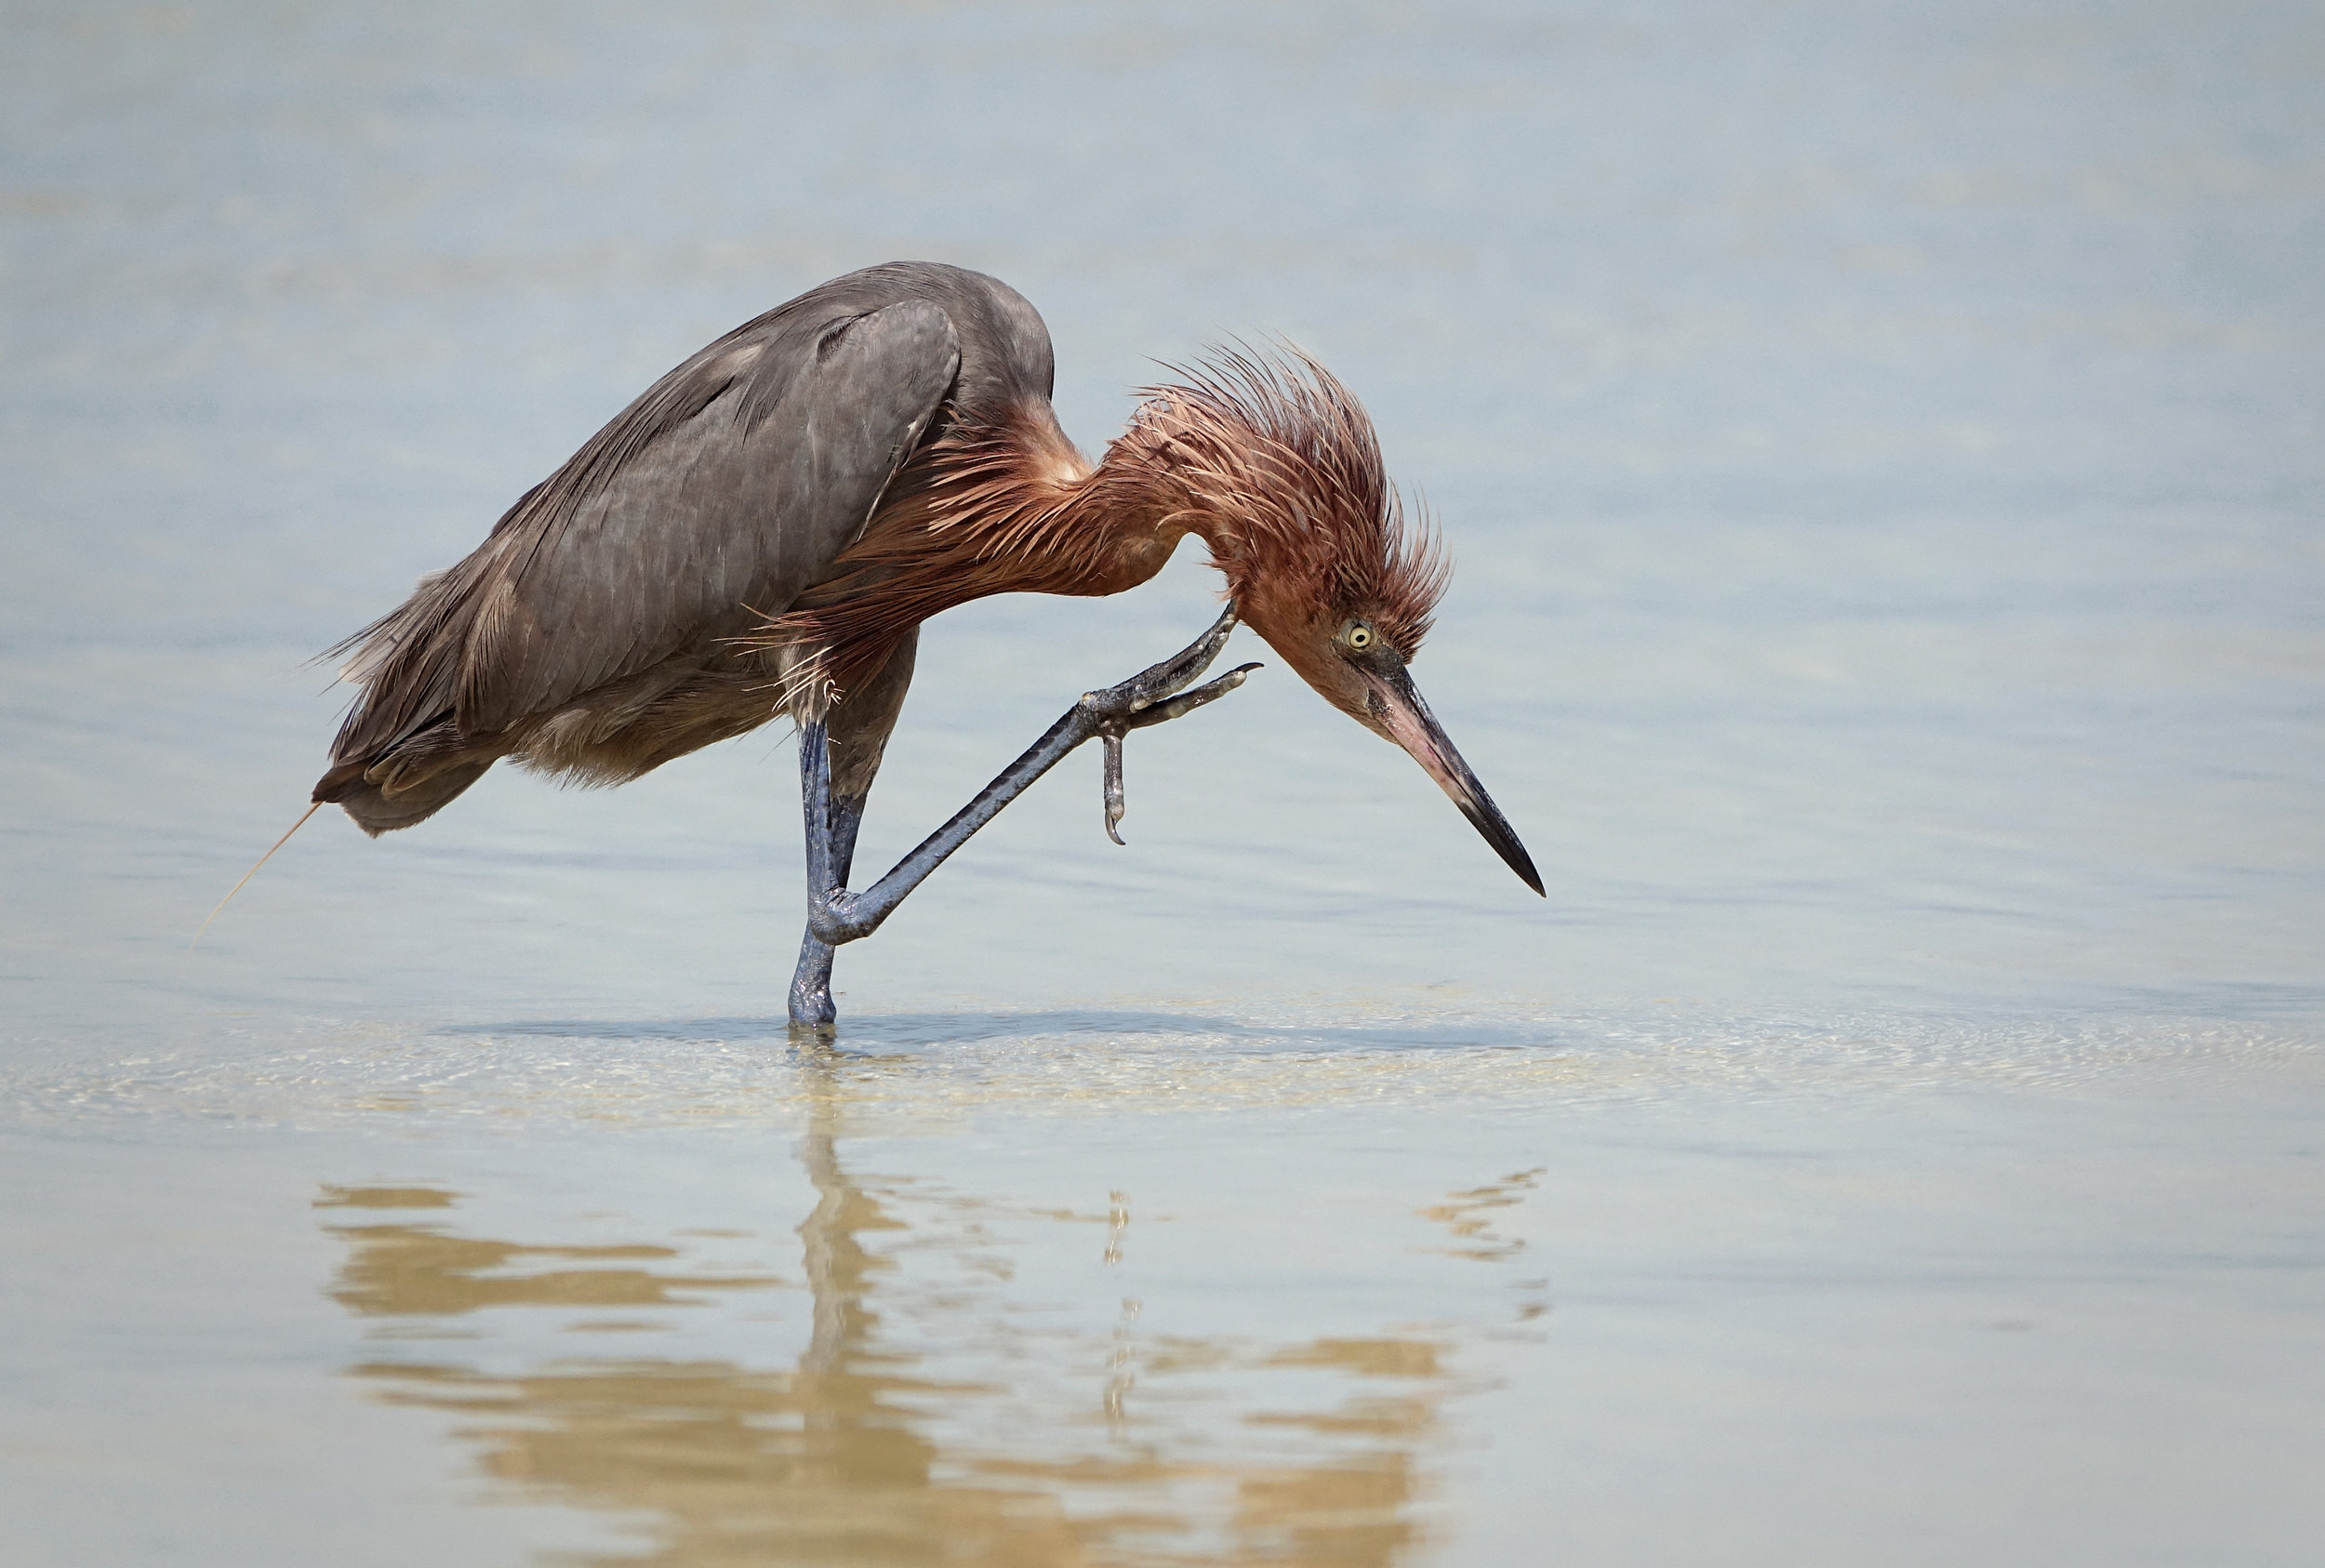 REDDISH EGRET (Egretta rufescens), Isla Holbox, Mexico, April, 2018